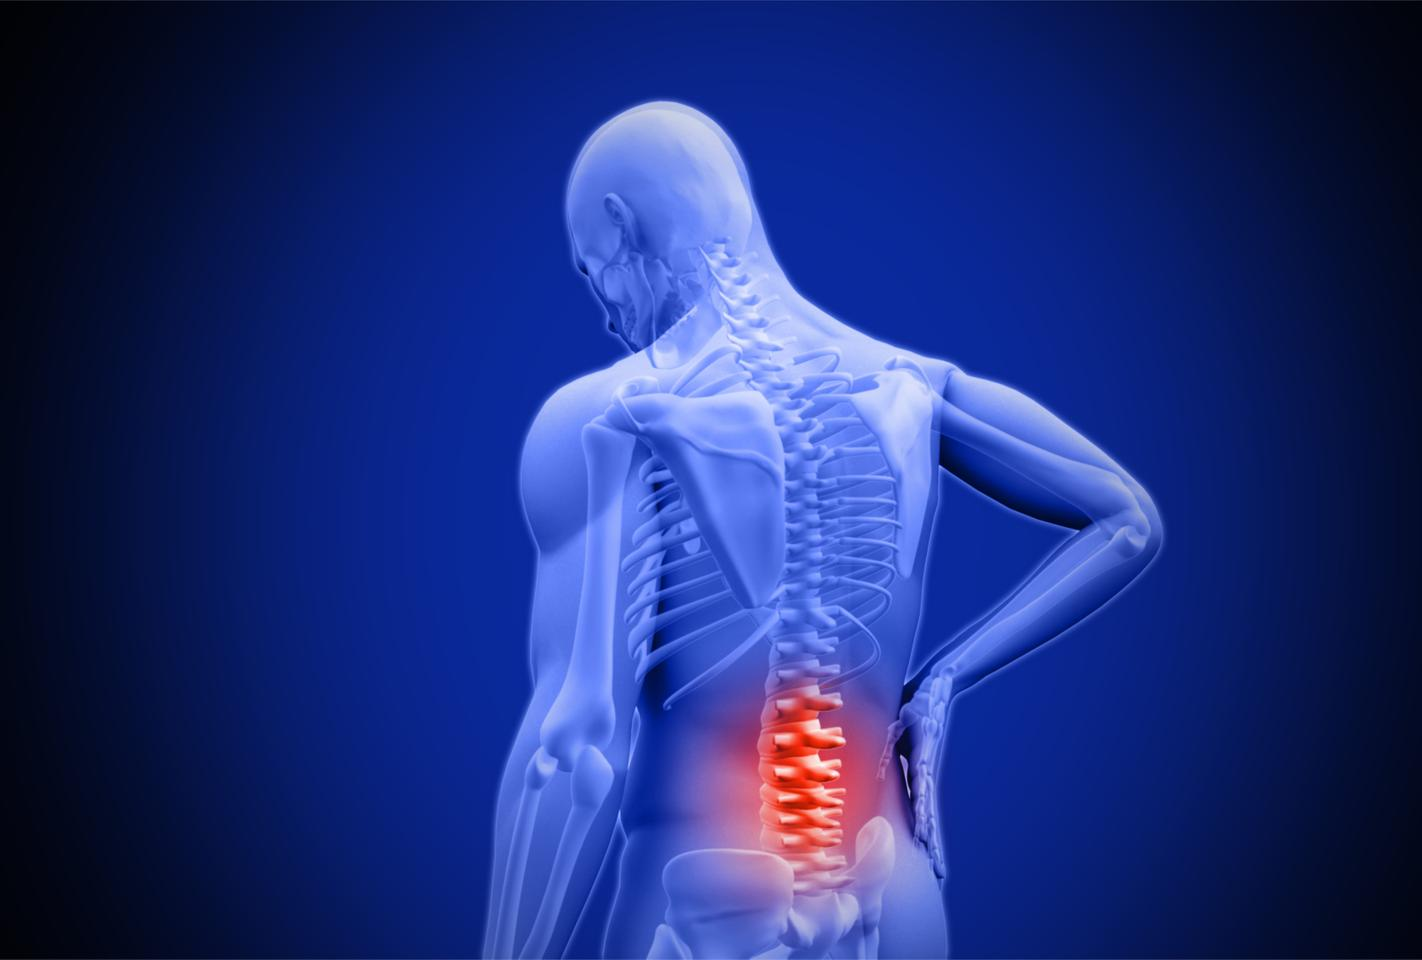 Scientists have found that a relatively new class of drugs known as senolytics can prevent spinal disc degeneration in mice